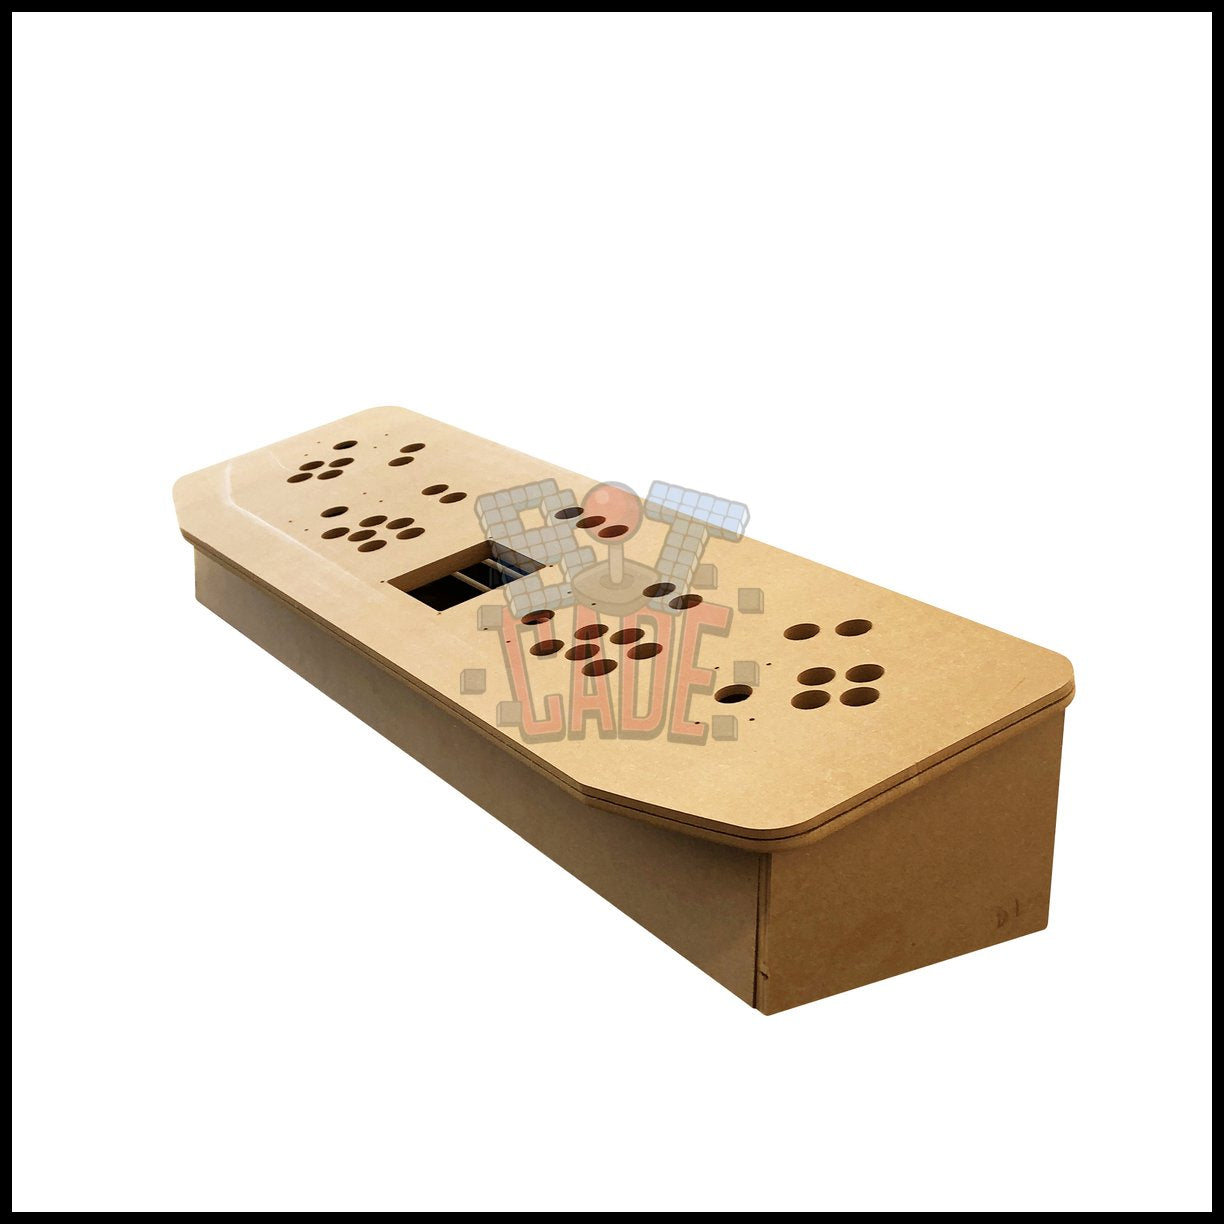 Bitcade - 4 Player Control Panel Kit